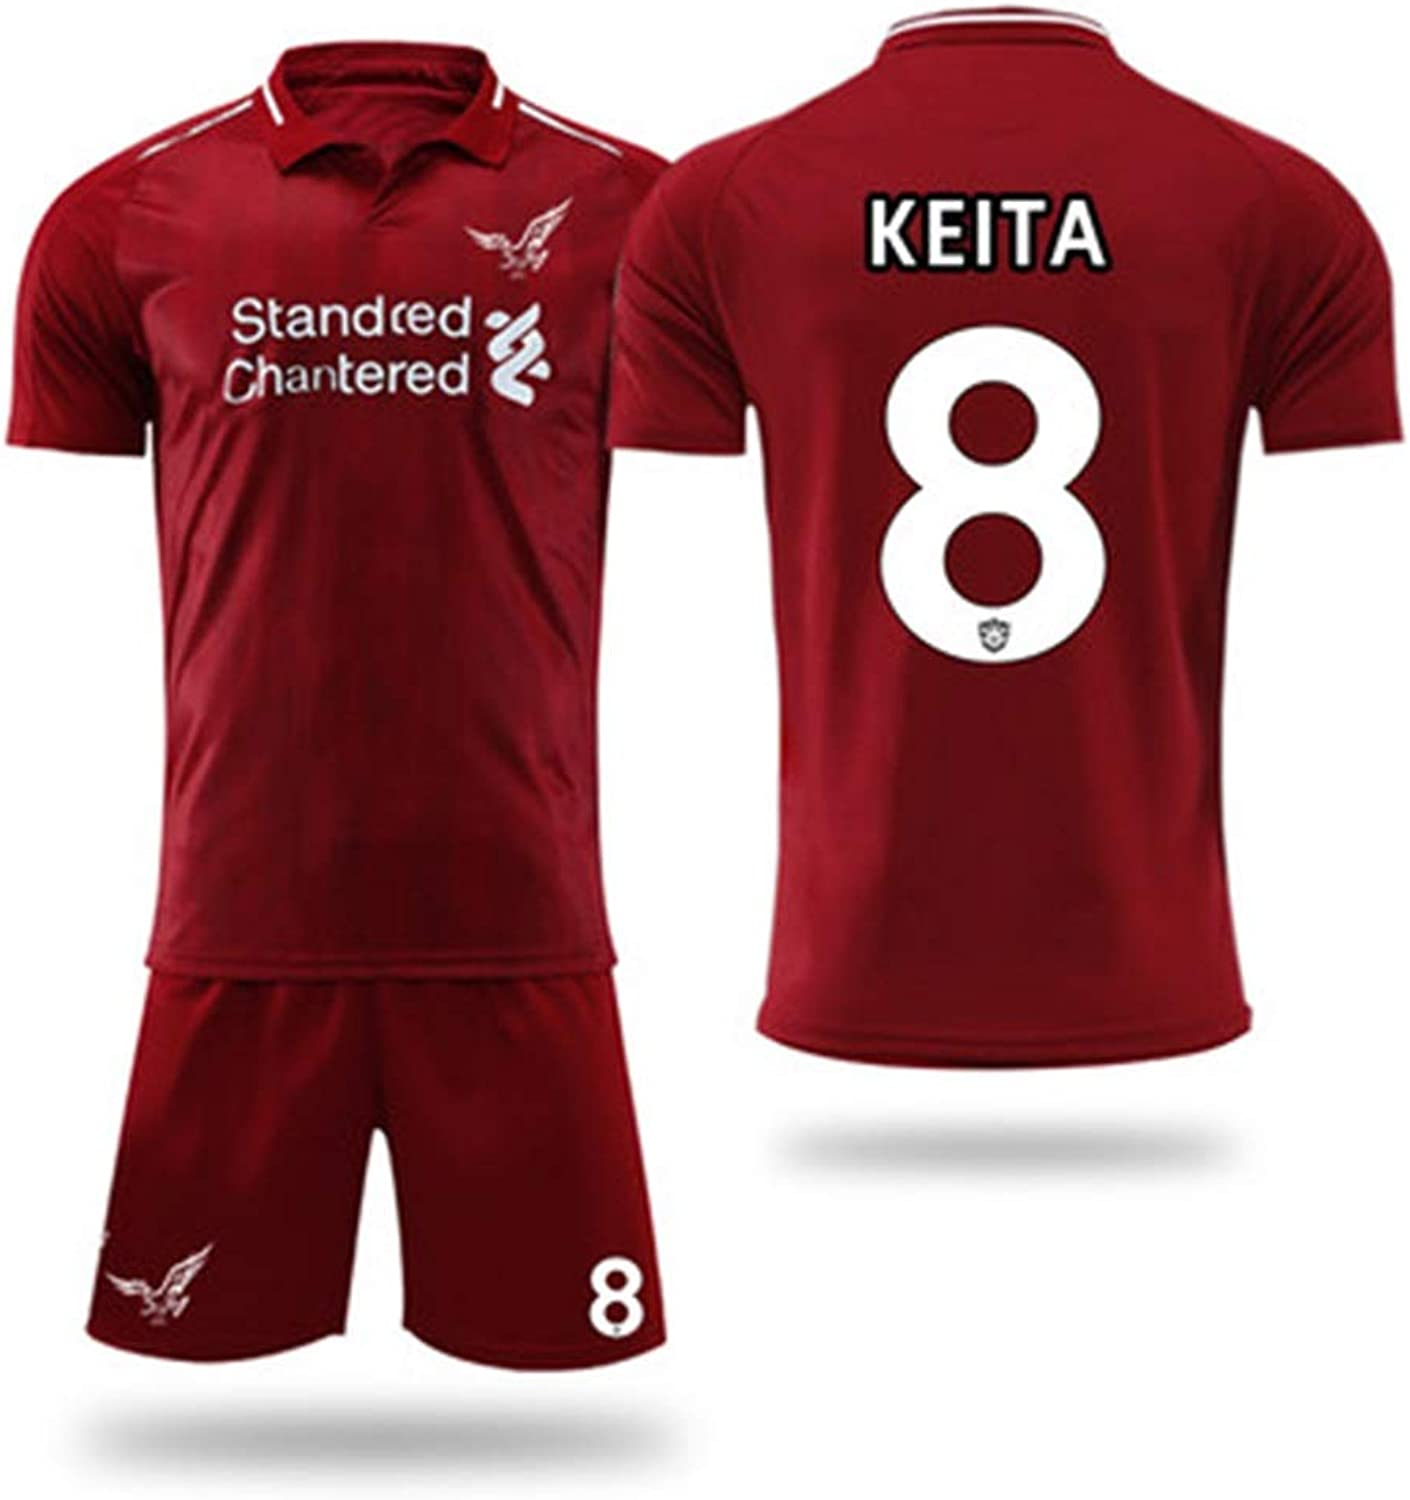 YAXIAO Short-Sleeved T-Shirt Shorts Liverpool Jersey Home Football Training Suit Sportswear Suit T-Shirt (color   A, Size   S)